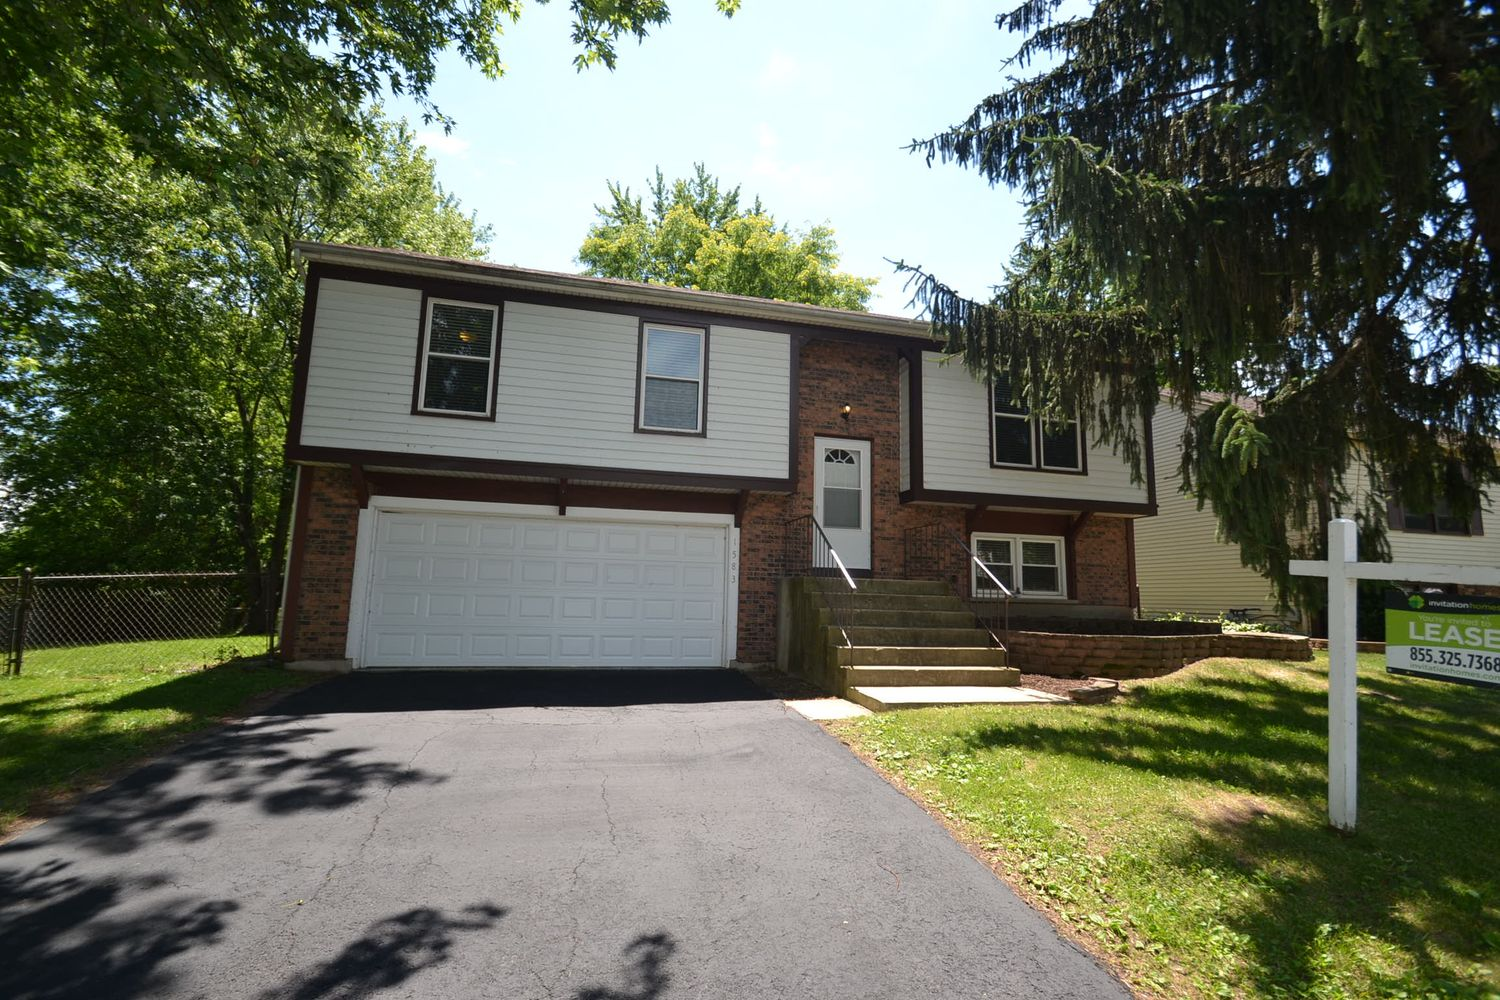 Houses For Rent In St Charles Il On Craigslist - House Spots